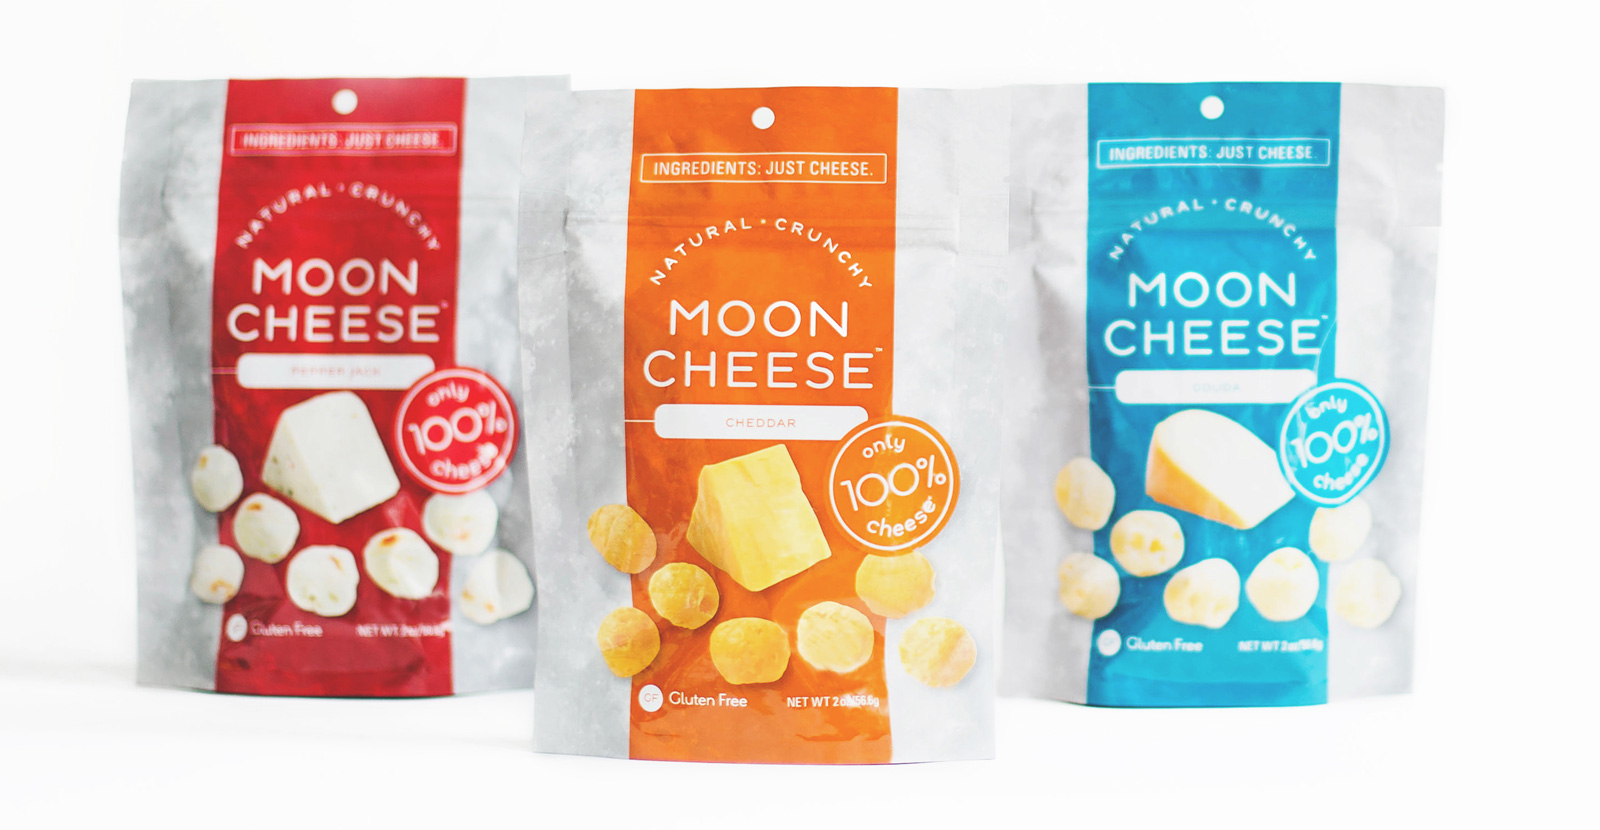 Moon Cheese Product